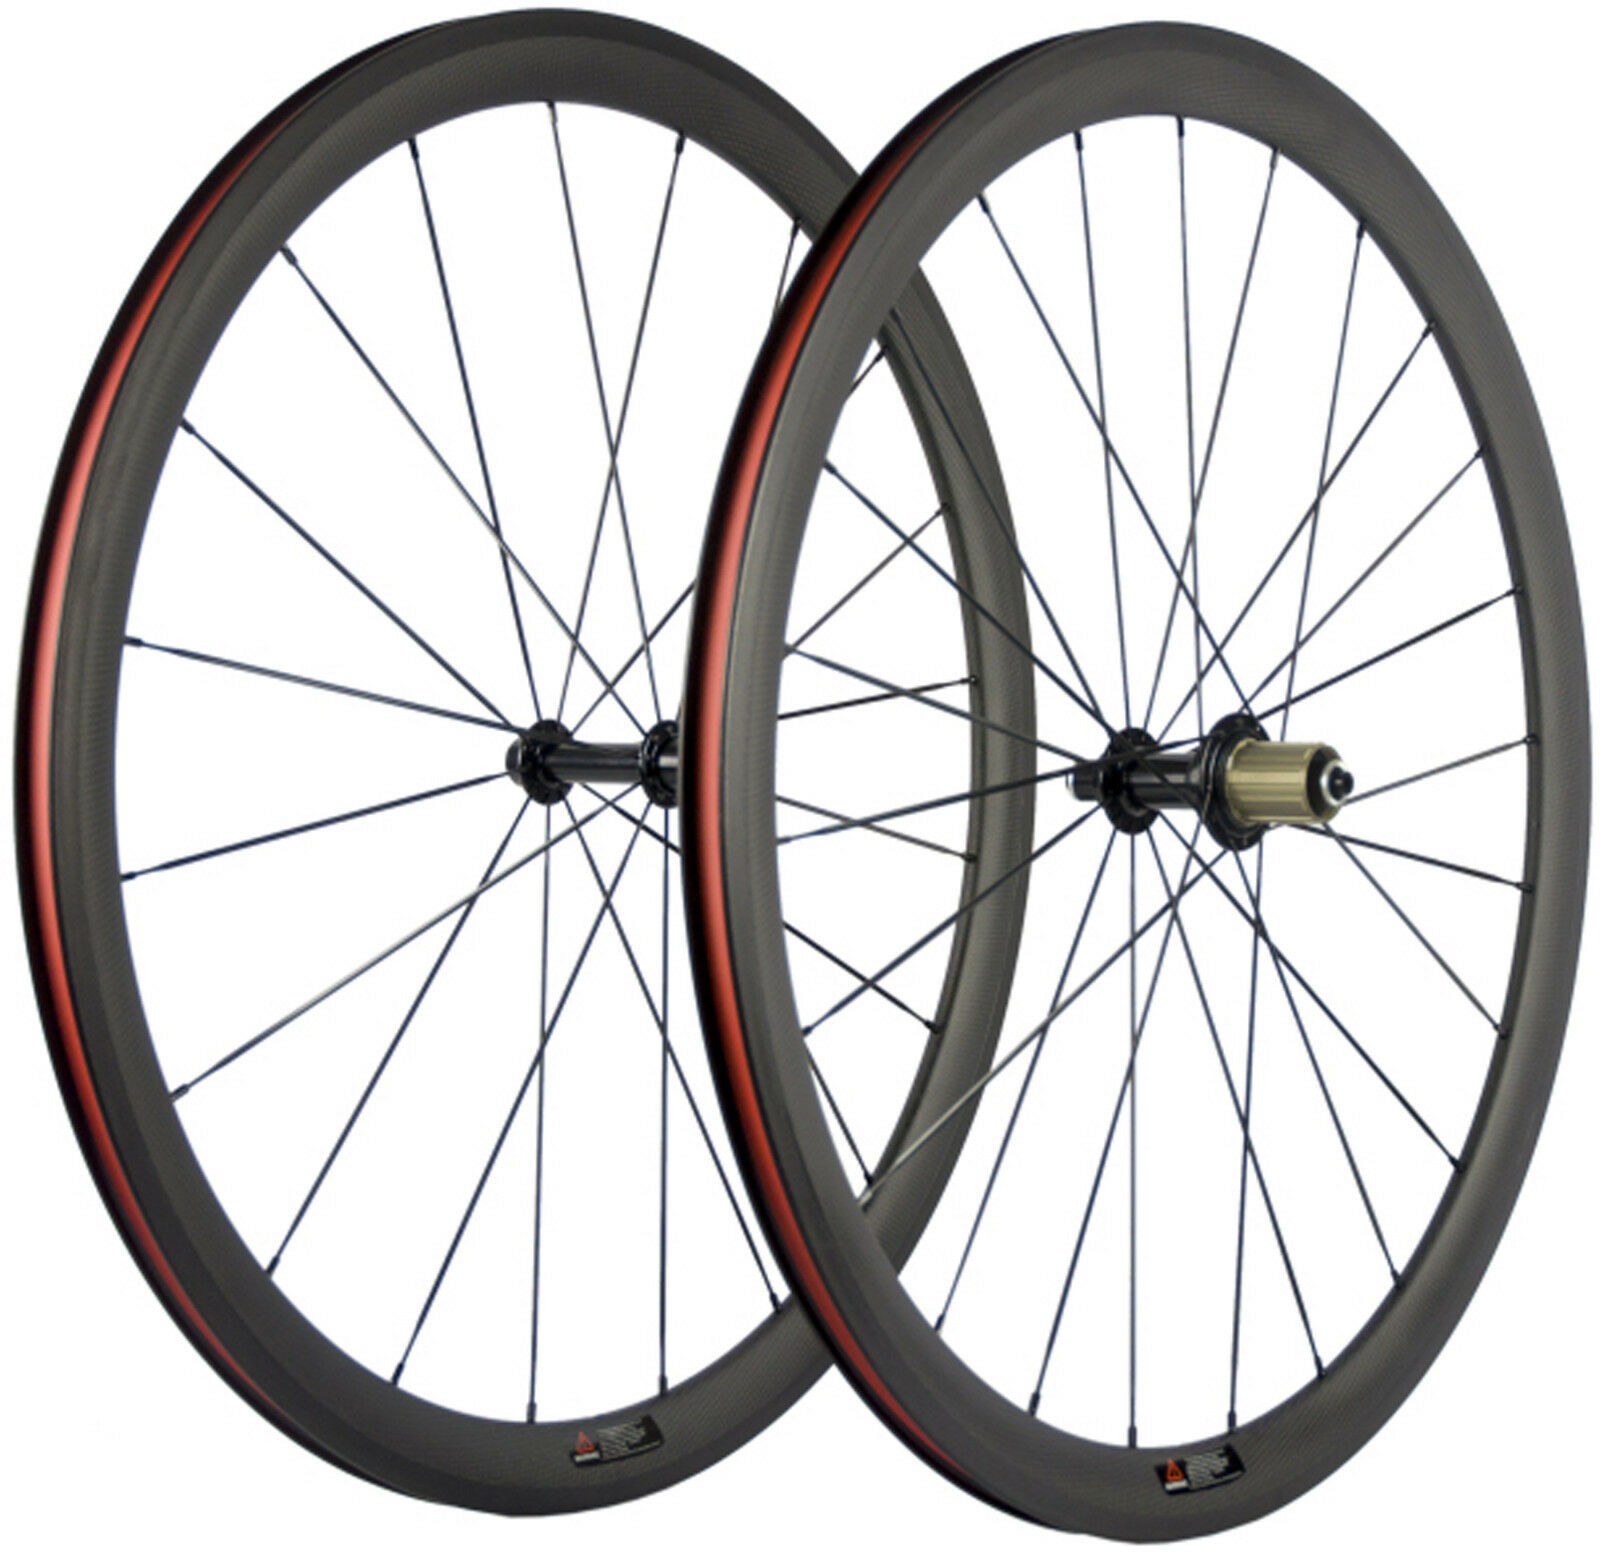 38mm Clincher Carbon Wheels Road Bike Wheelset Powerway R13 Hub Bicycle Wheelset